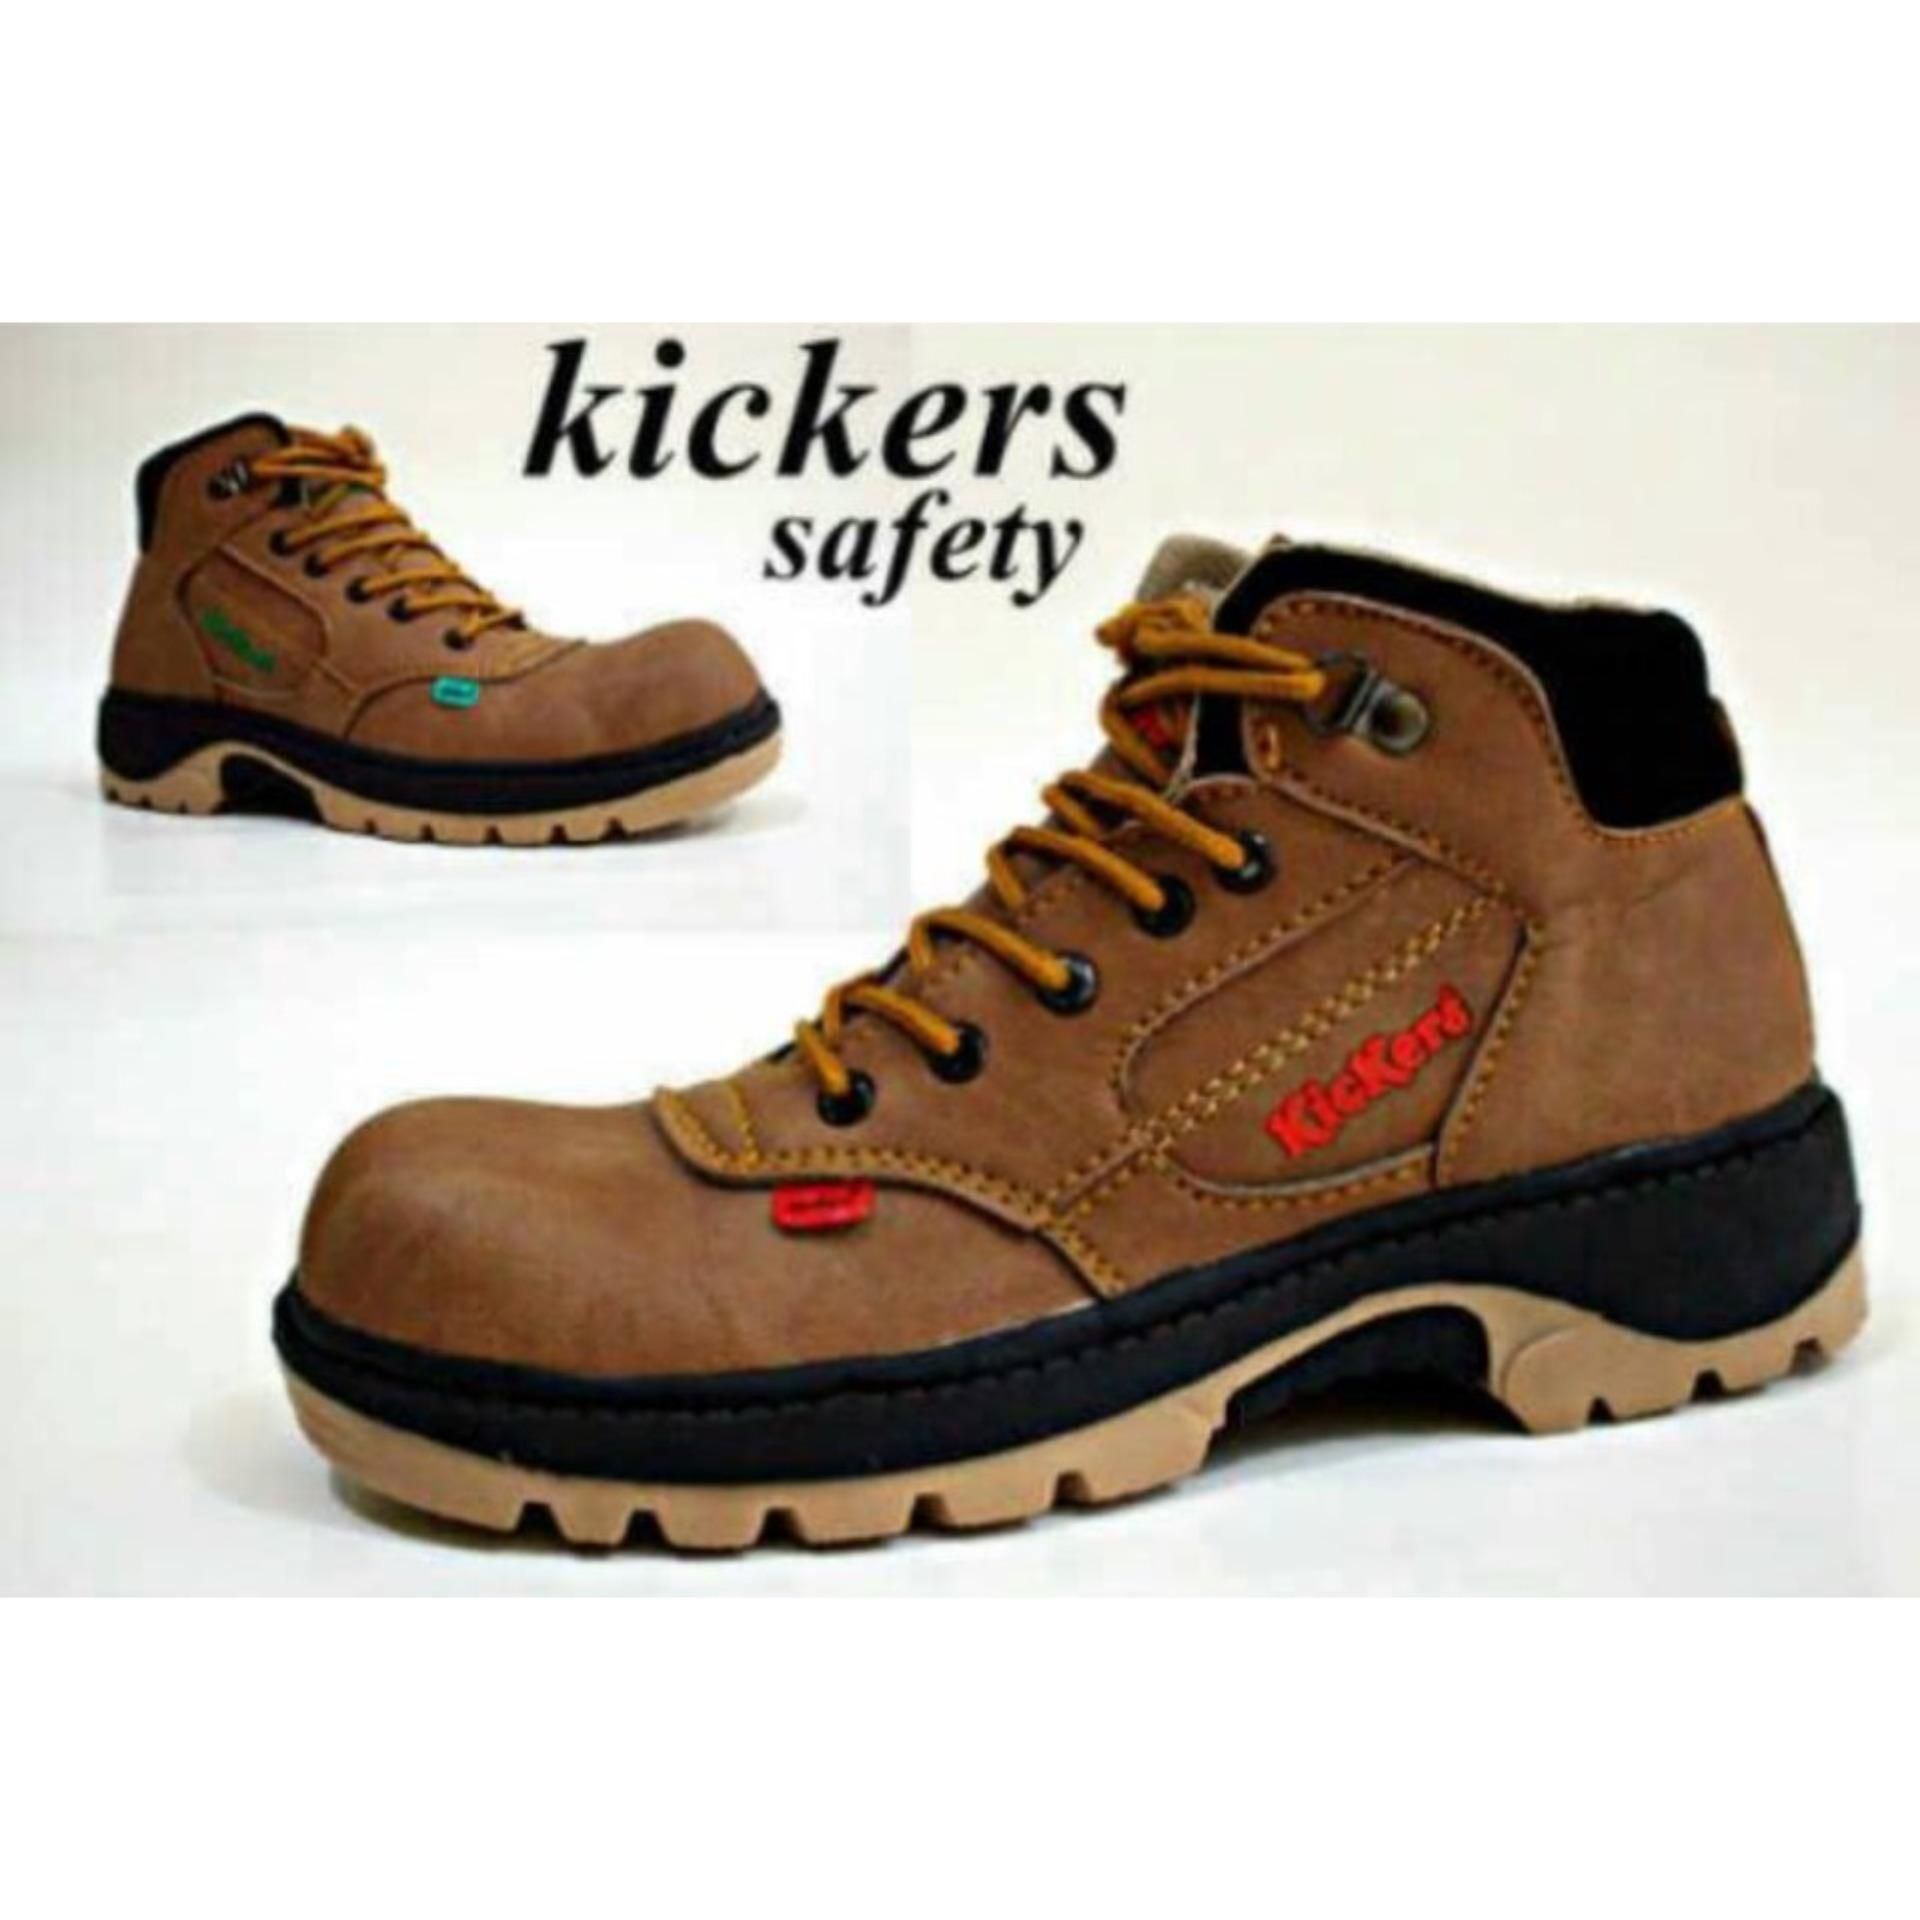 Sepatu Boots Safety Kickers Pria Hitam Brown Tan Cream Caterpillar